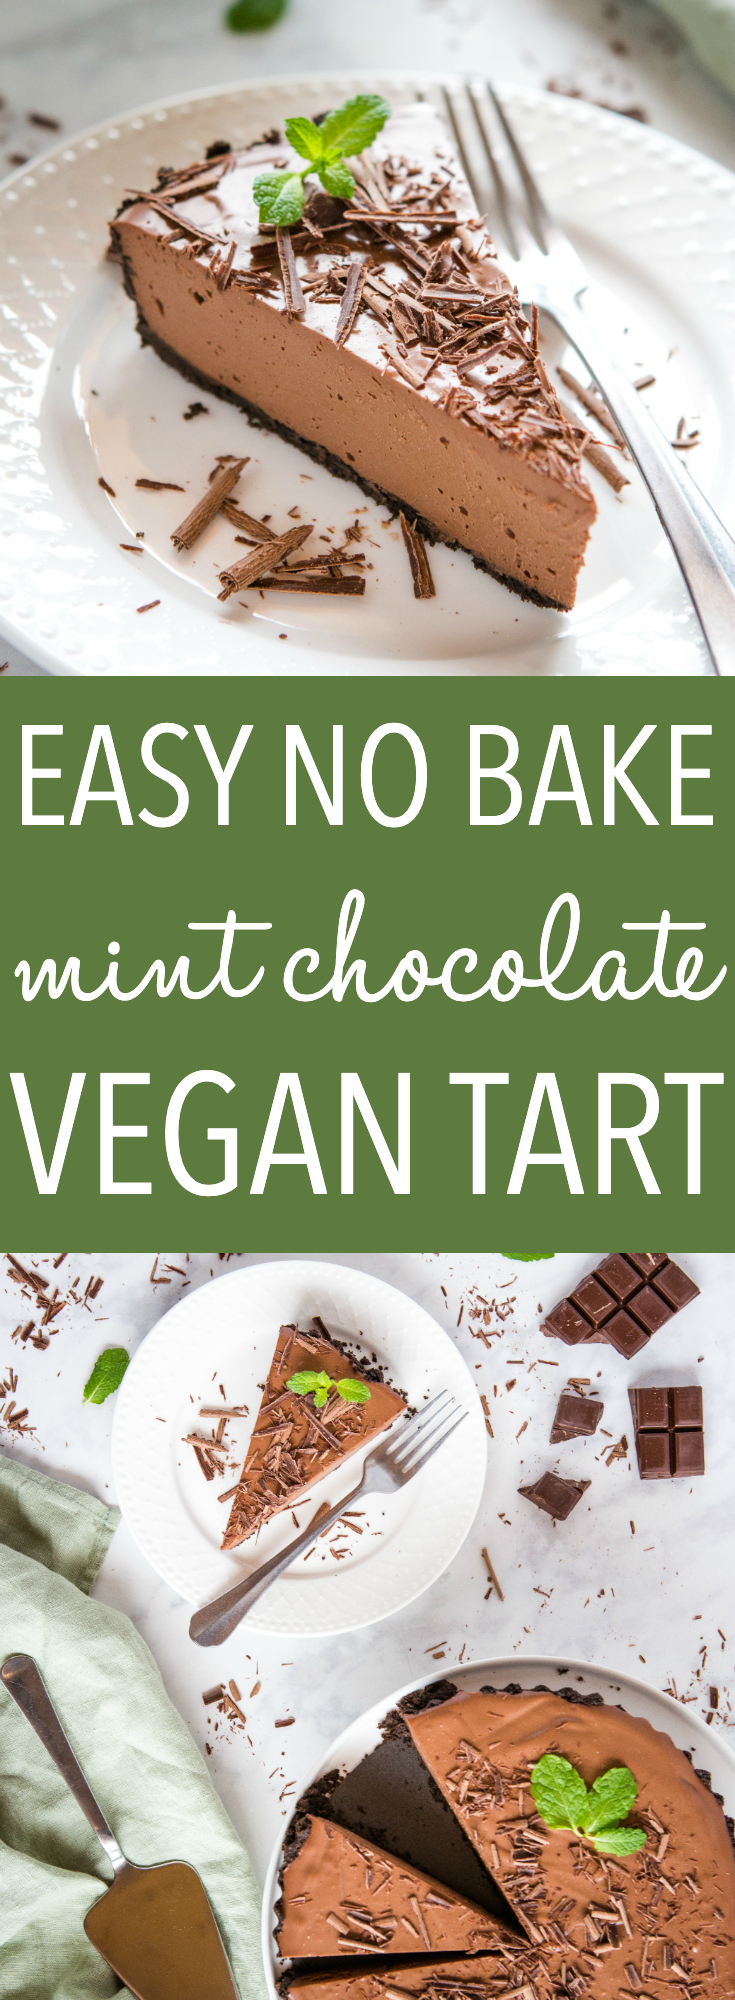 This Best Ever Vegan Peppermint Chocolate Tart is an indulgent dessert with a secret ingredient! It's creamy and indulgent, naturally sweetened, & vegan! via @busybakerblog